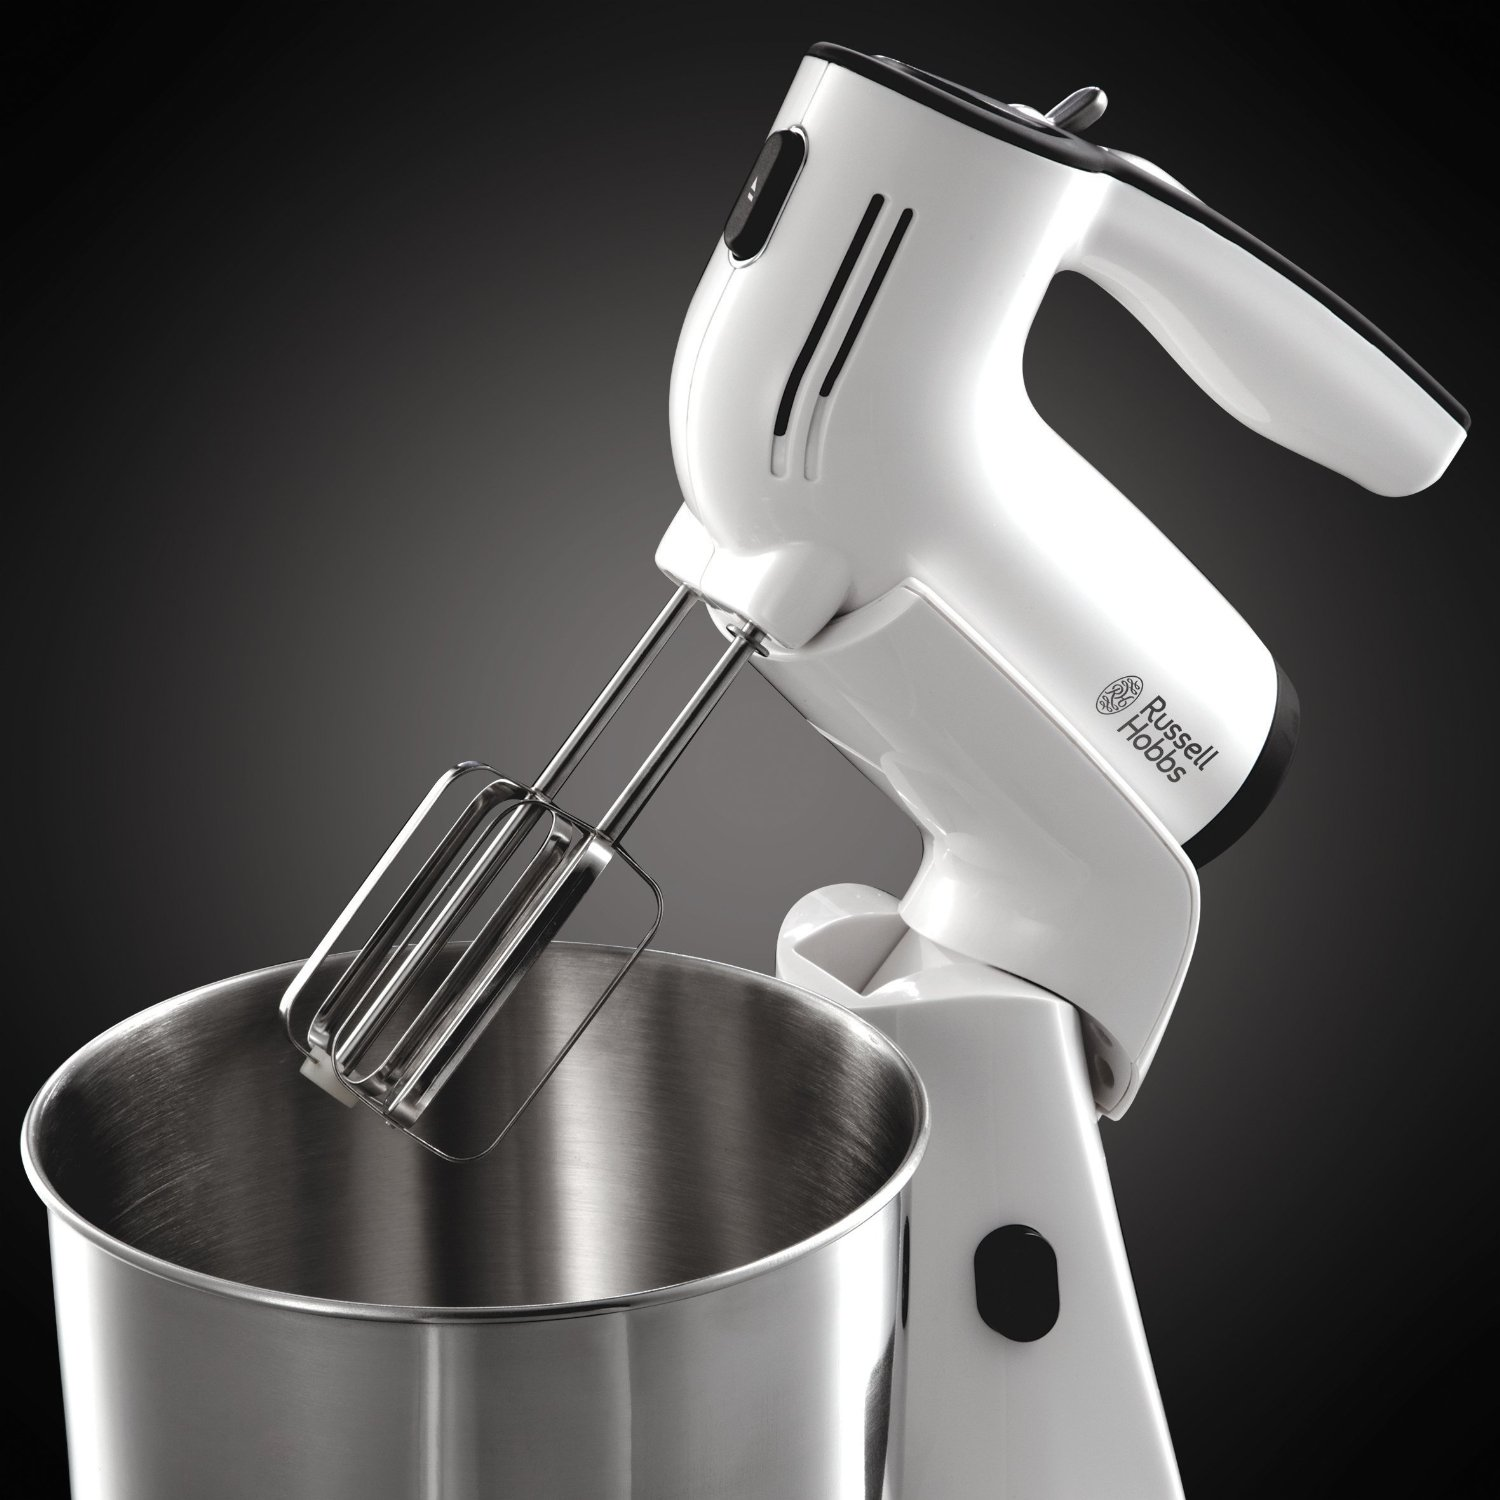 russell hobbs hand and stand mixer. Black Bedroom Furniture Sets. Home Design Ideas